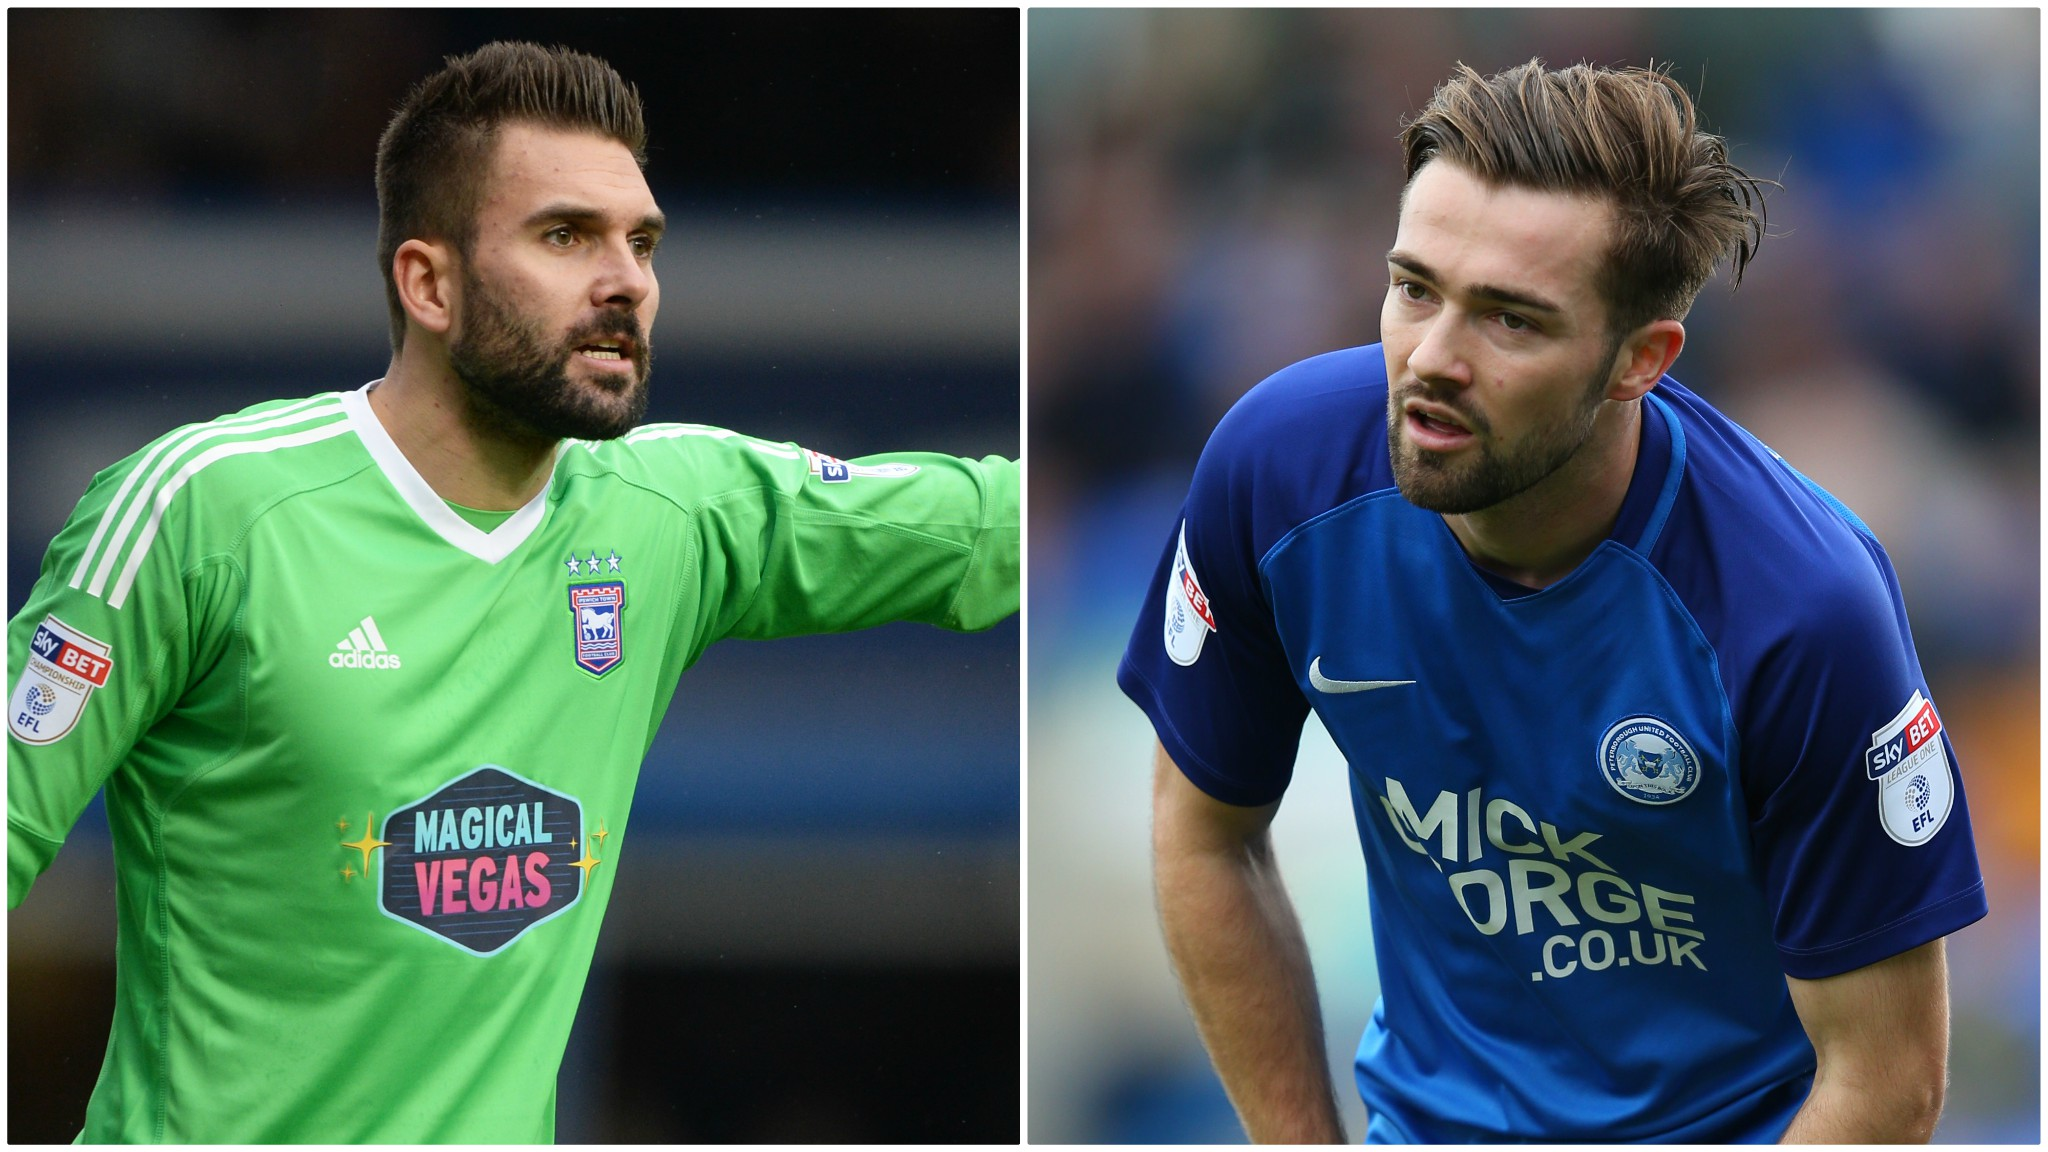 Ipswich Town: Peterborough's Gwion Edwards signs as Bartosz Bialkowski extends deal